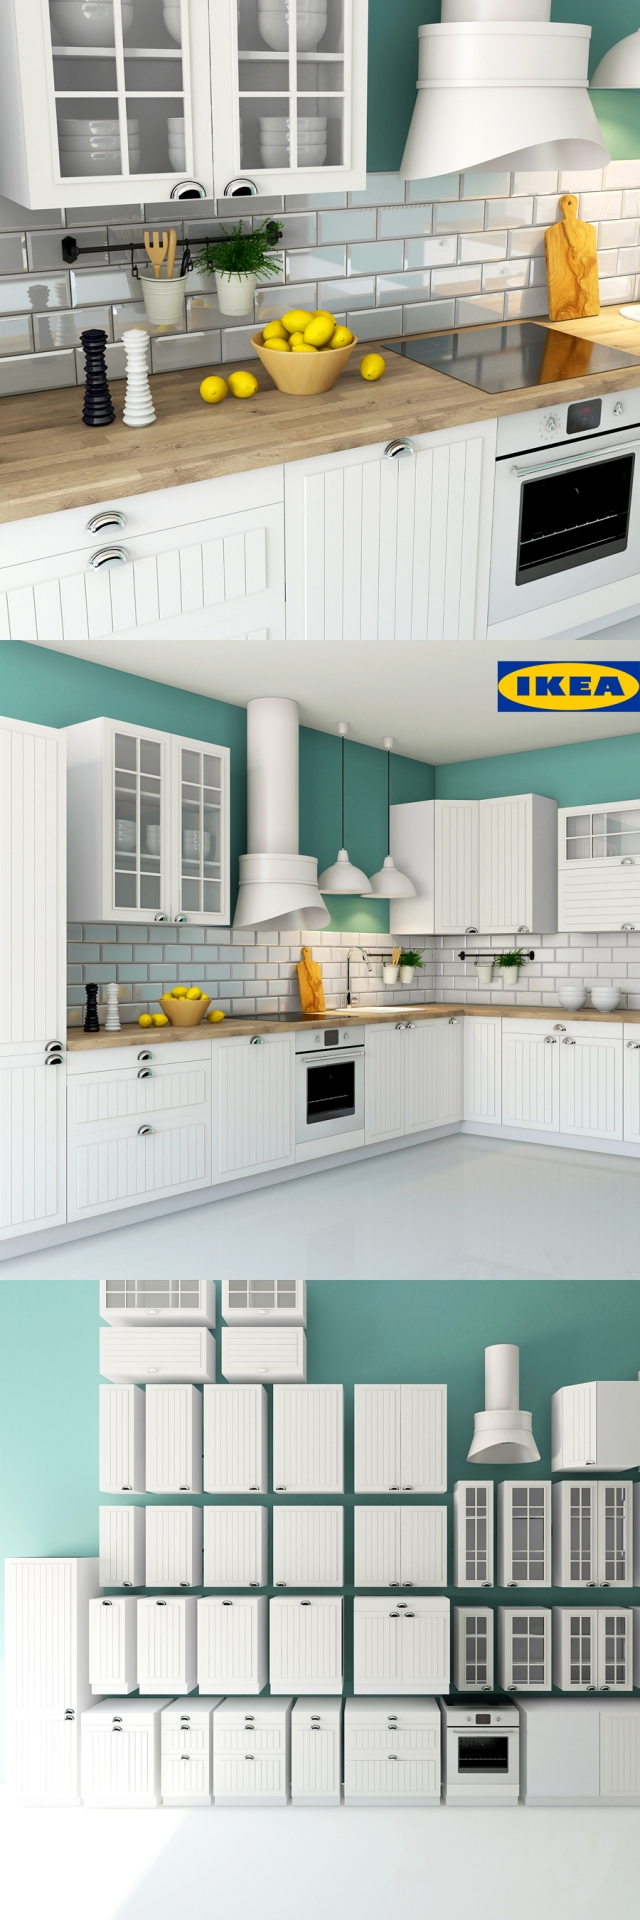 Faktum Ikea Kitchen Ctot Ikea Stat Faktum With Ikea Faktum.